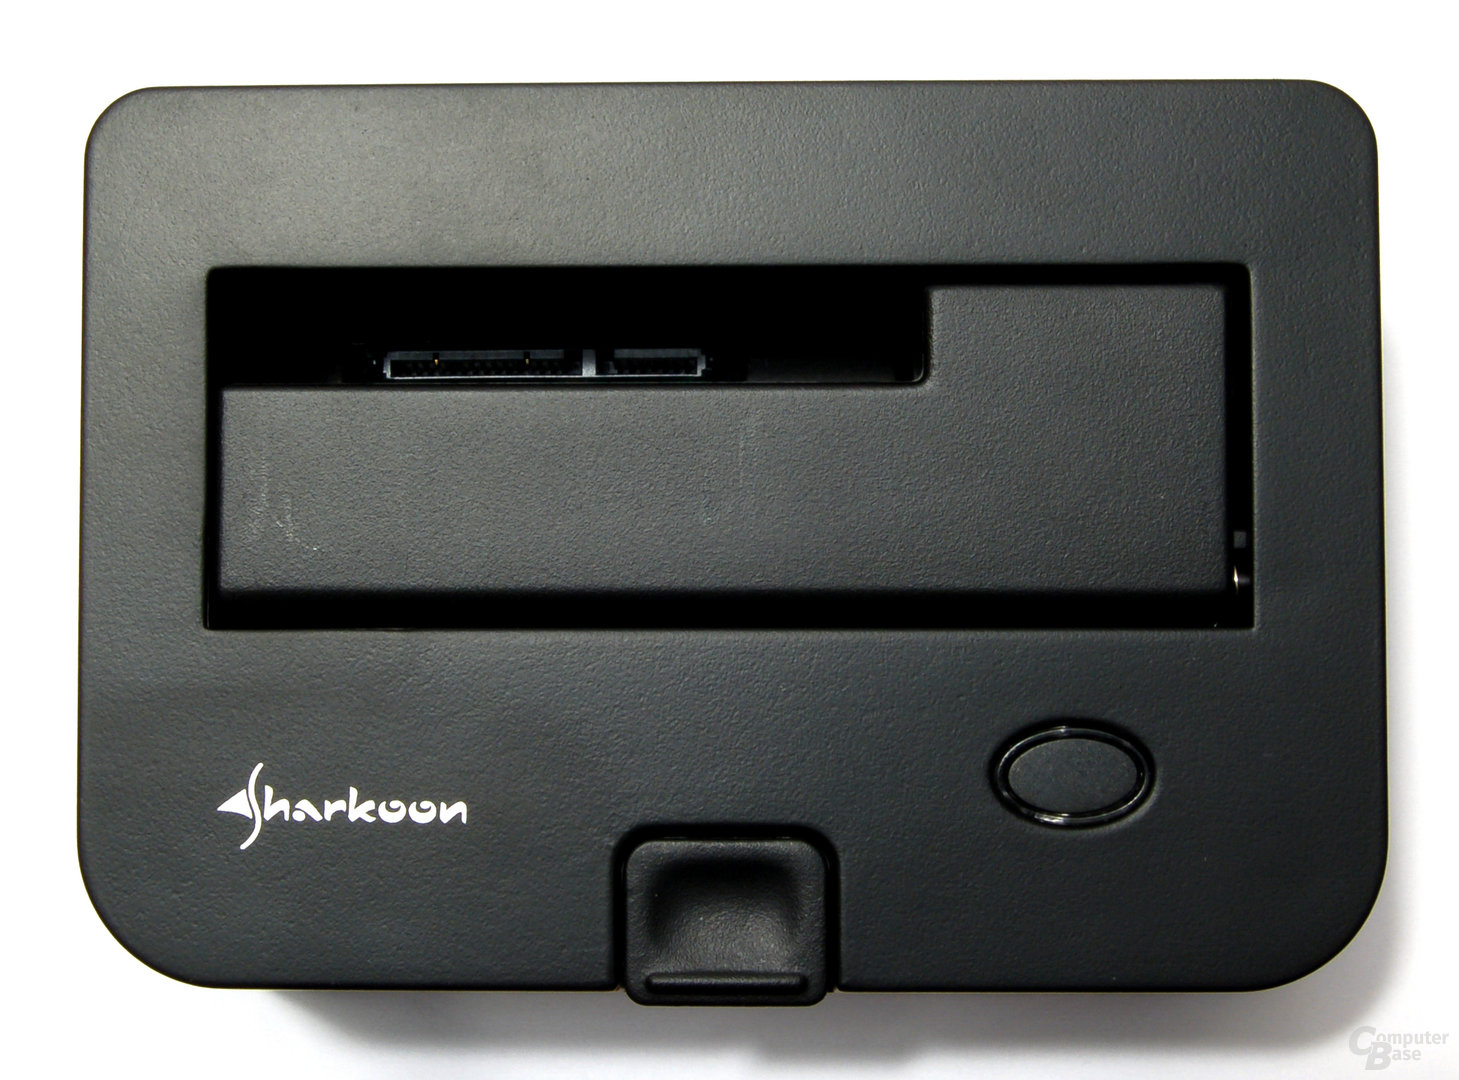 Sharkoon SATA Quickport Pro von oben